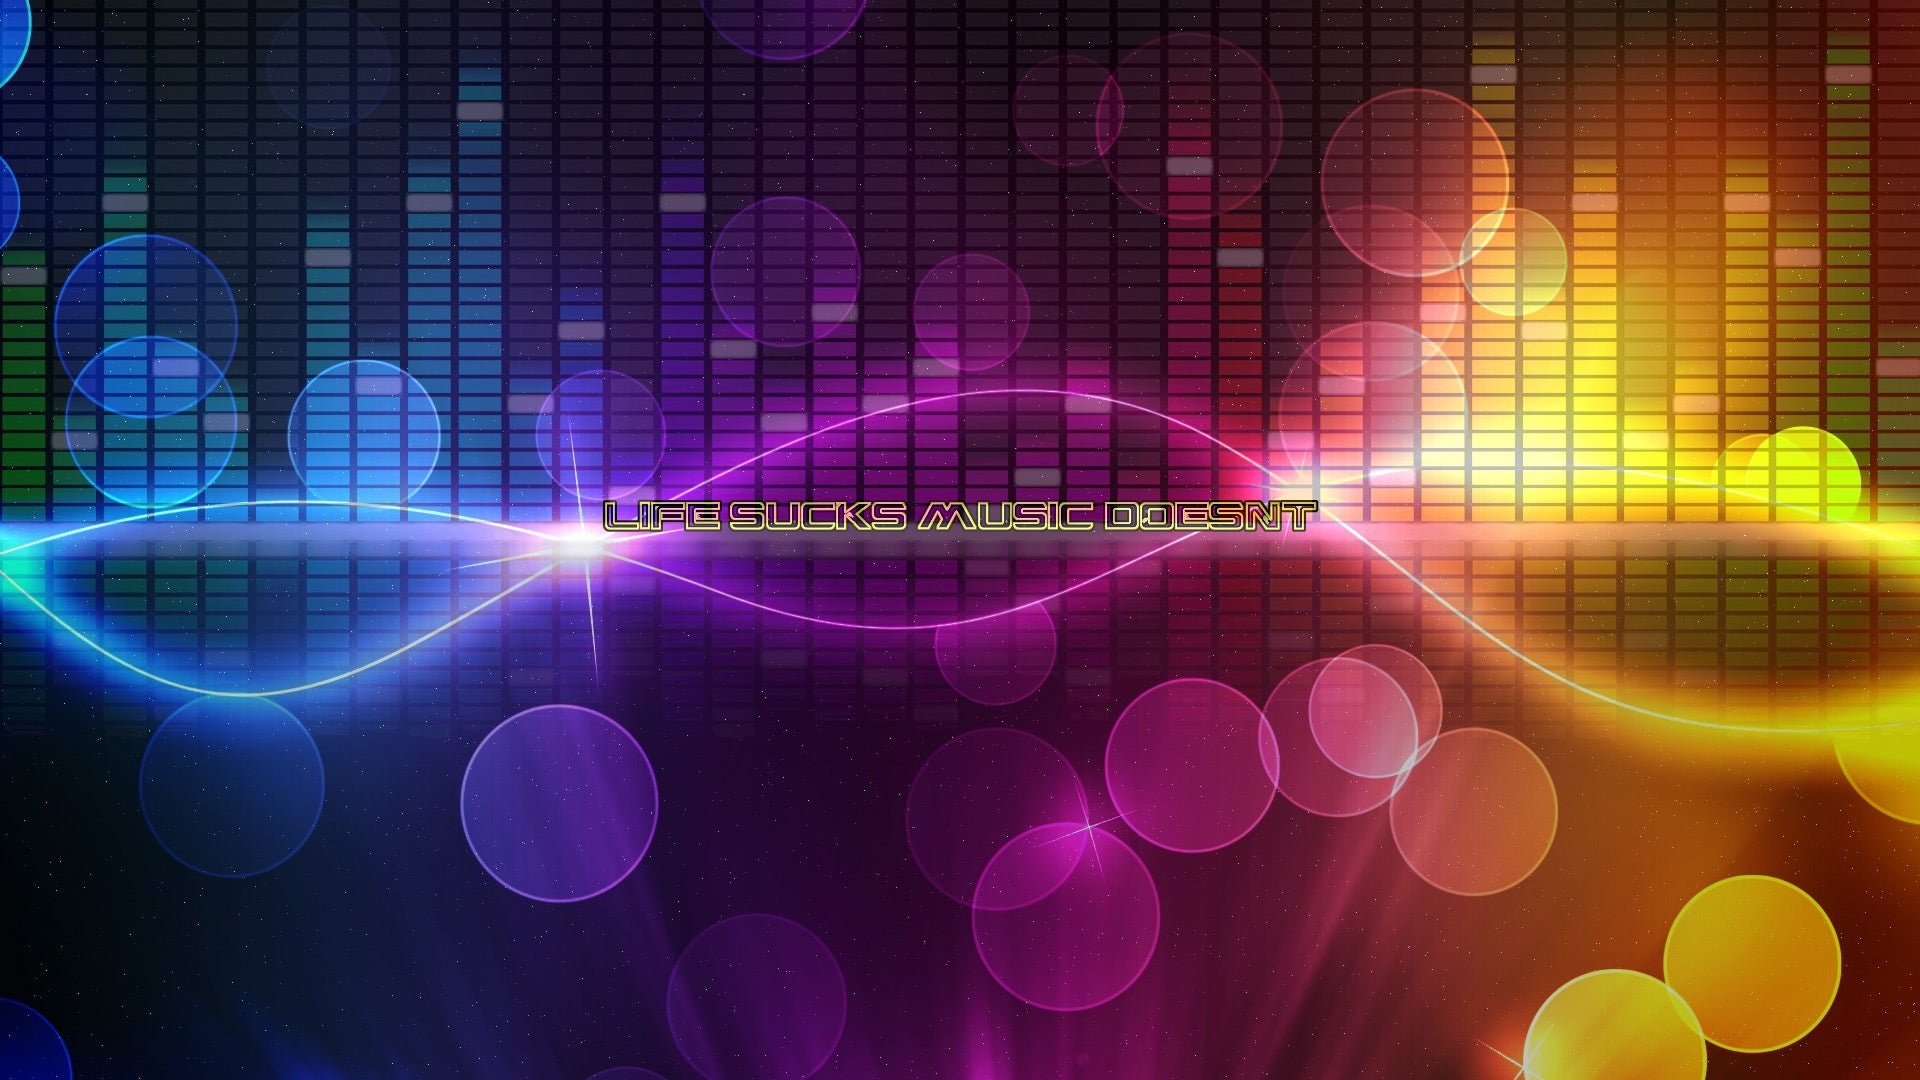 Good Wallpaper Music Purple - ddbvsutic8c4ybmleral  Trends_651046.jpg